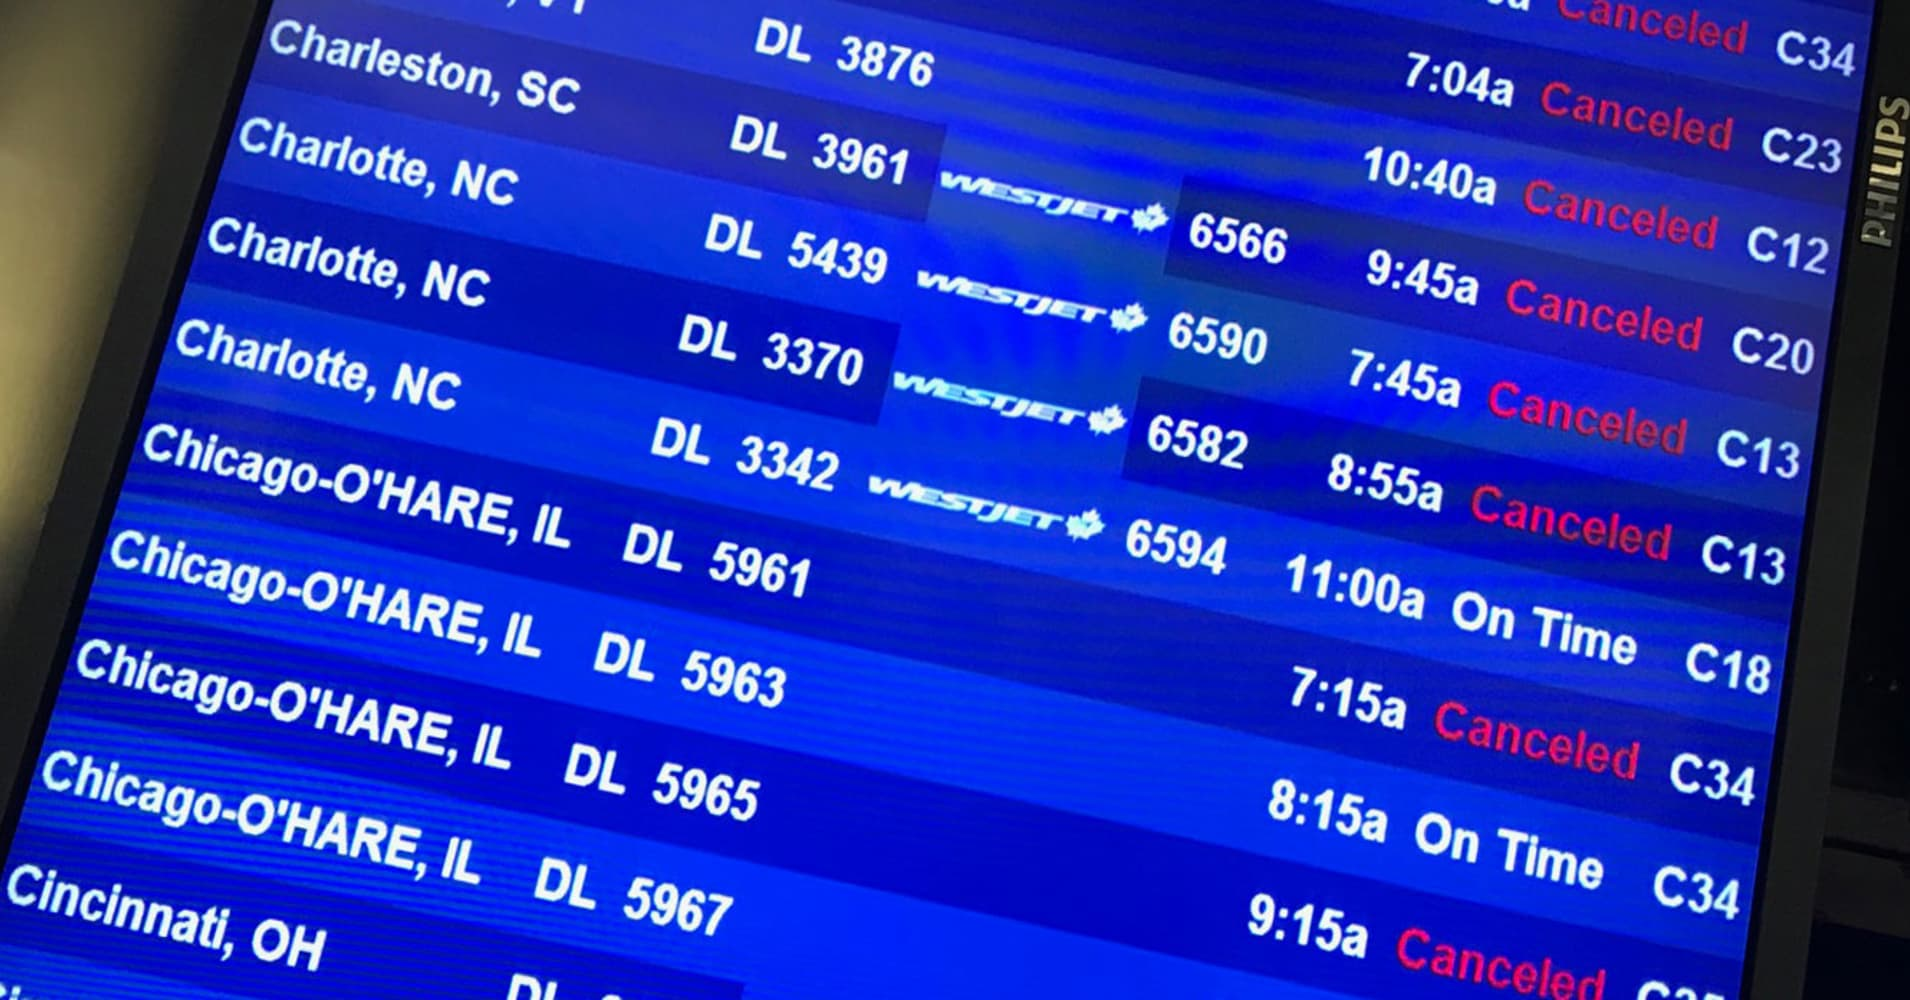 TRAVEL HELL 2000 FLIGHTS SCRAPPED